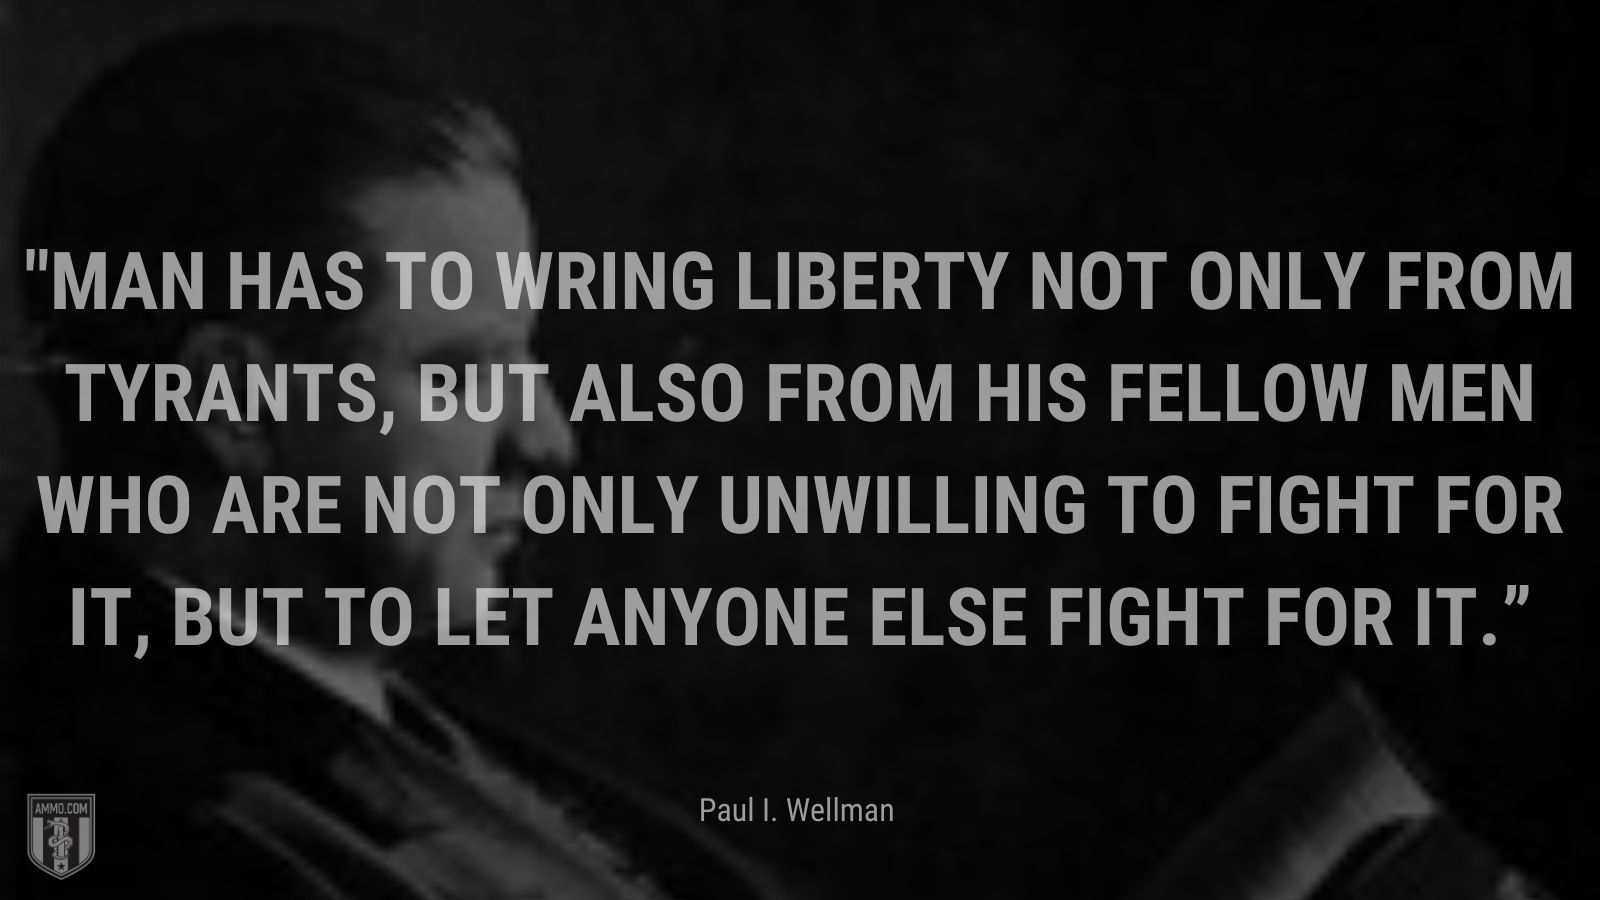 """""""Man has to wring Liberty not only from tyrants, but also from his fellow men who are not only unwilling to fight for it, but to let anyone else fight for it."""" - Paul I. Wellman"""